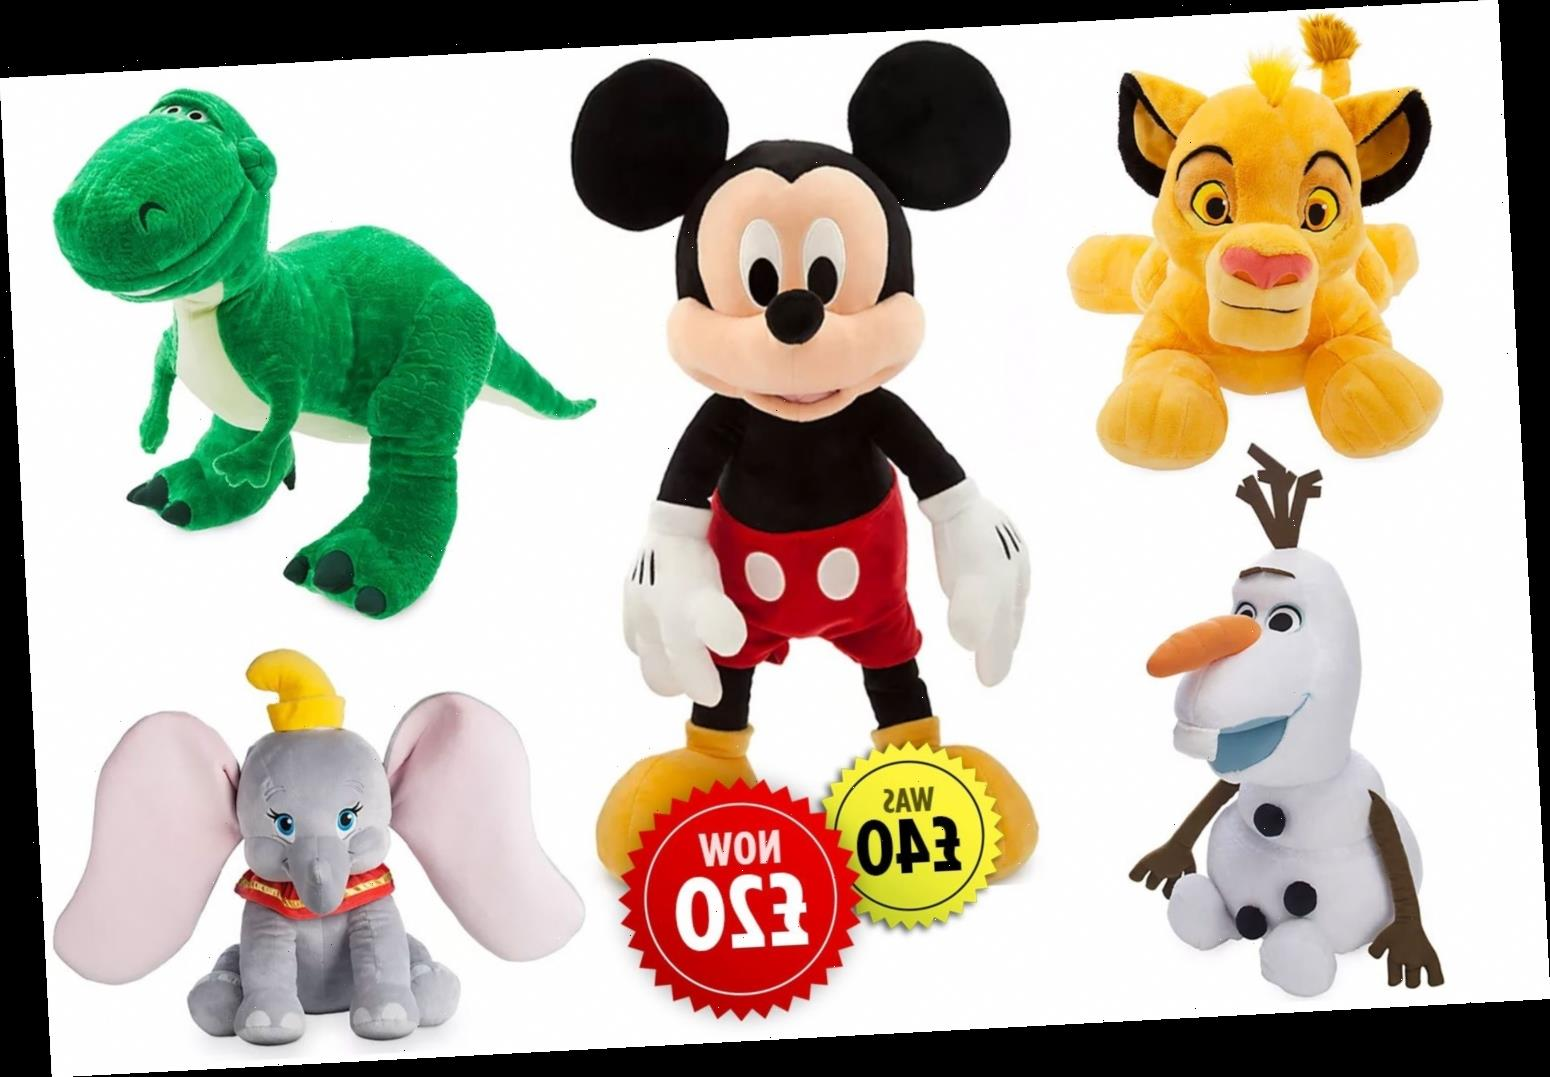 Disney launches half price toy sale and it includes Frozen, Toy Story and Lion King